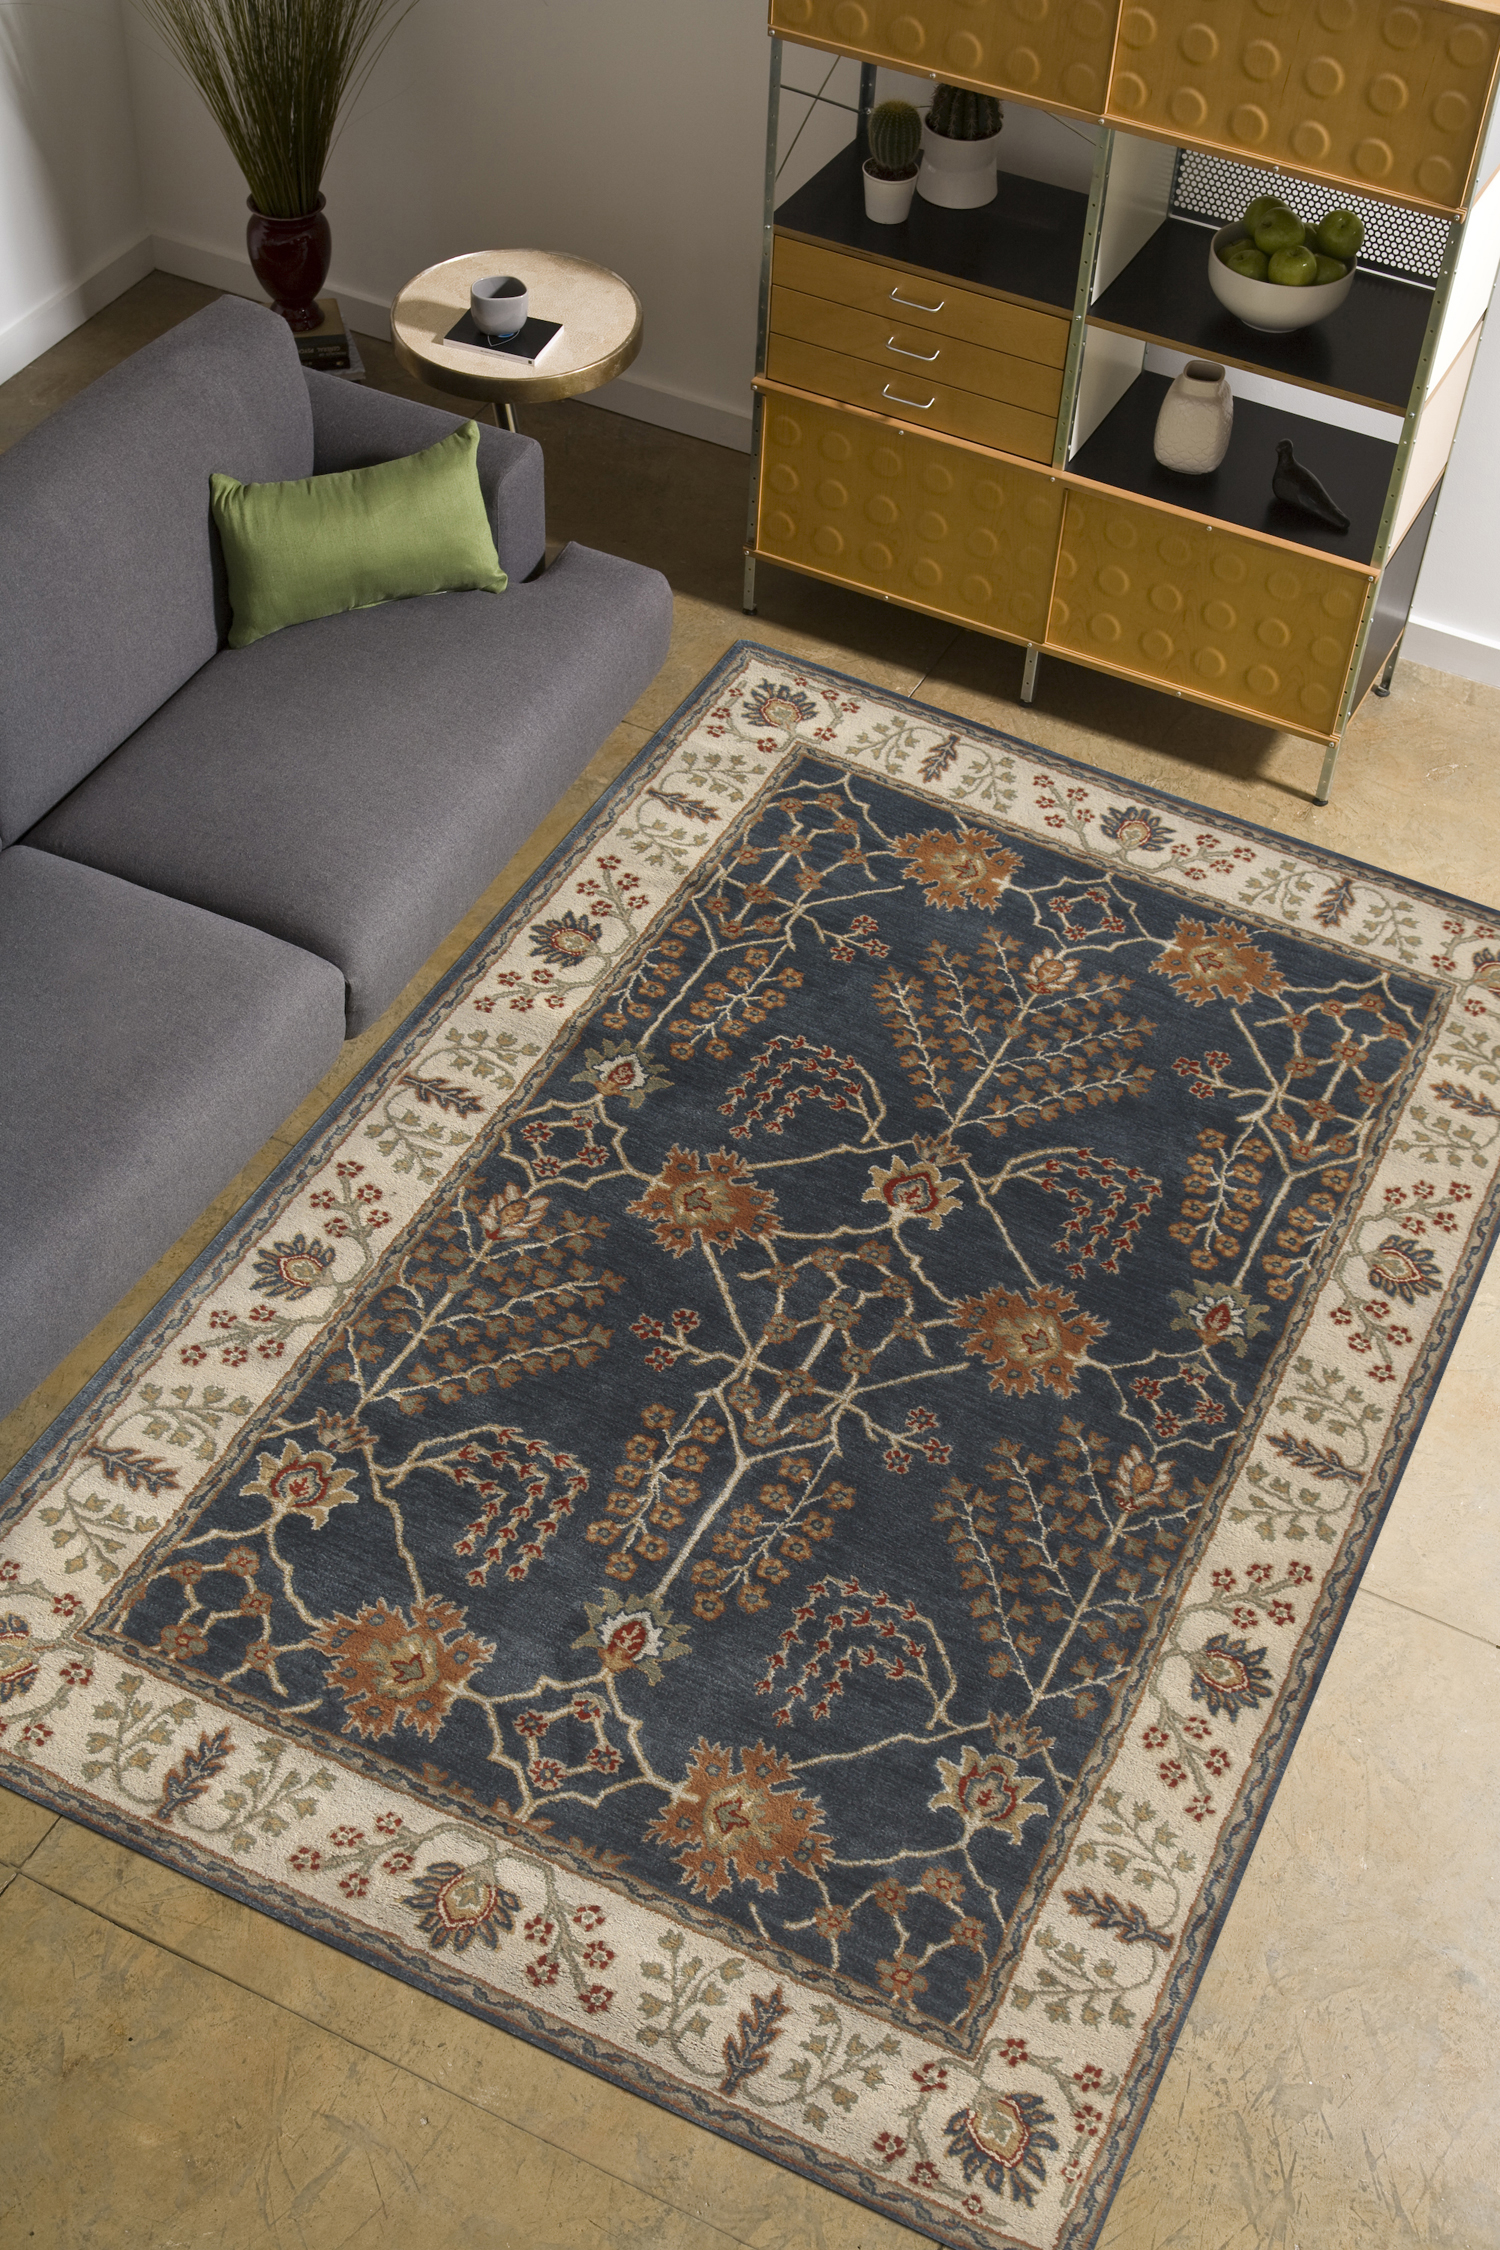 Area rug, home decoration Bluebell Spires Hand-Tufted 100% Wool Area Rug in Blues and Ivory Memorable gifts